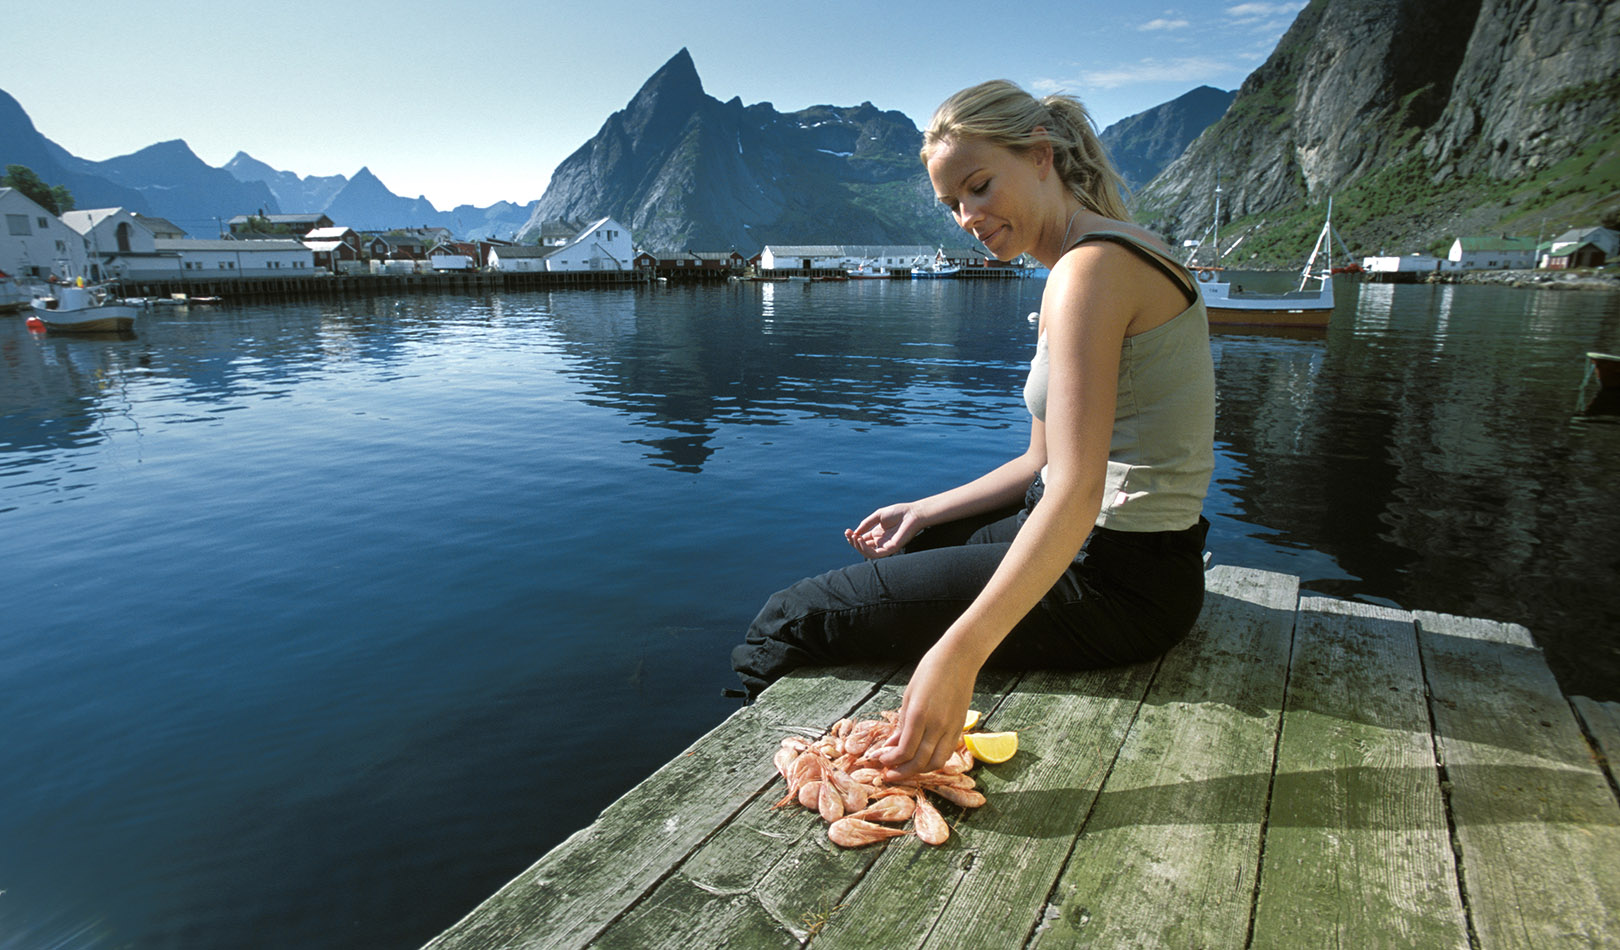 Woman eating shrimp in Lofoten, with houses, ocean and mountains in the background.